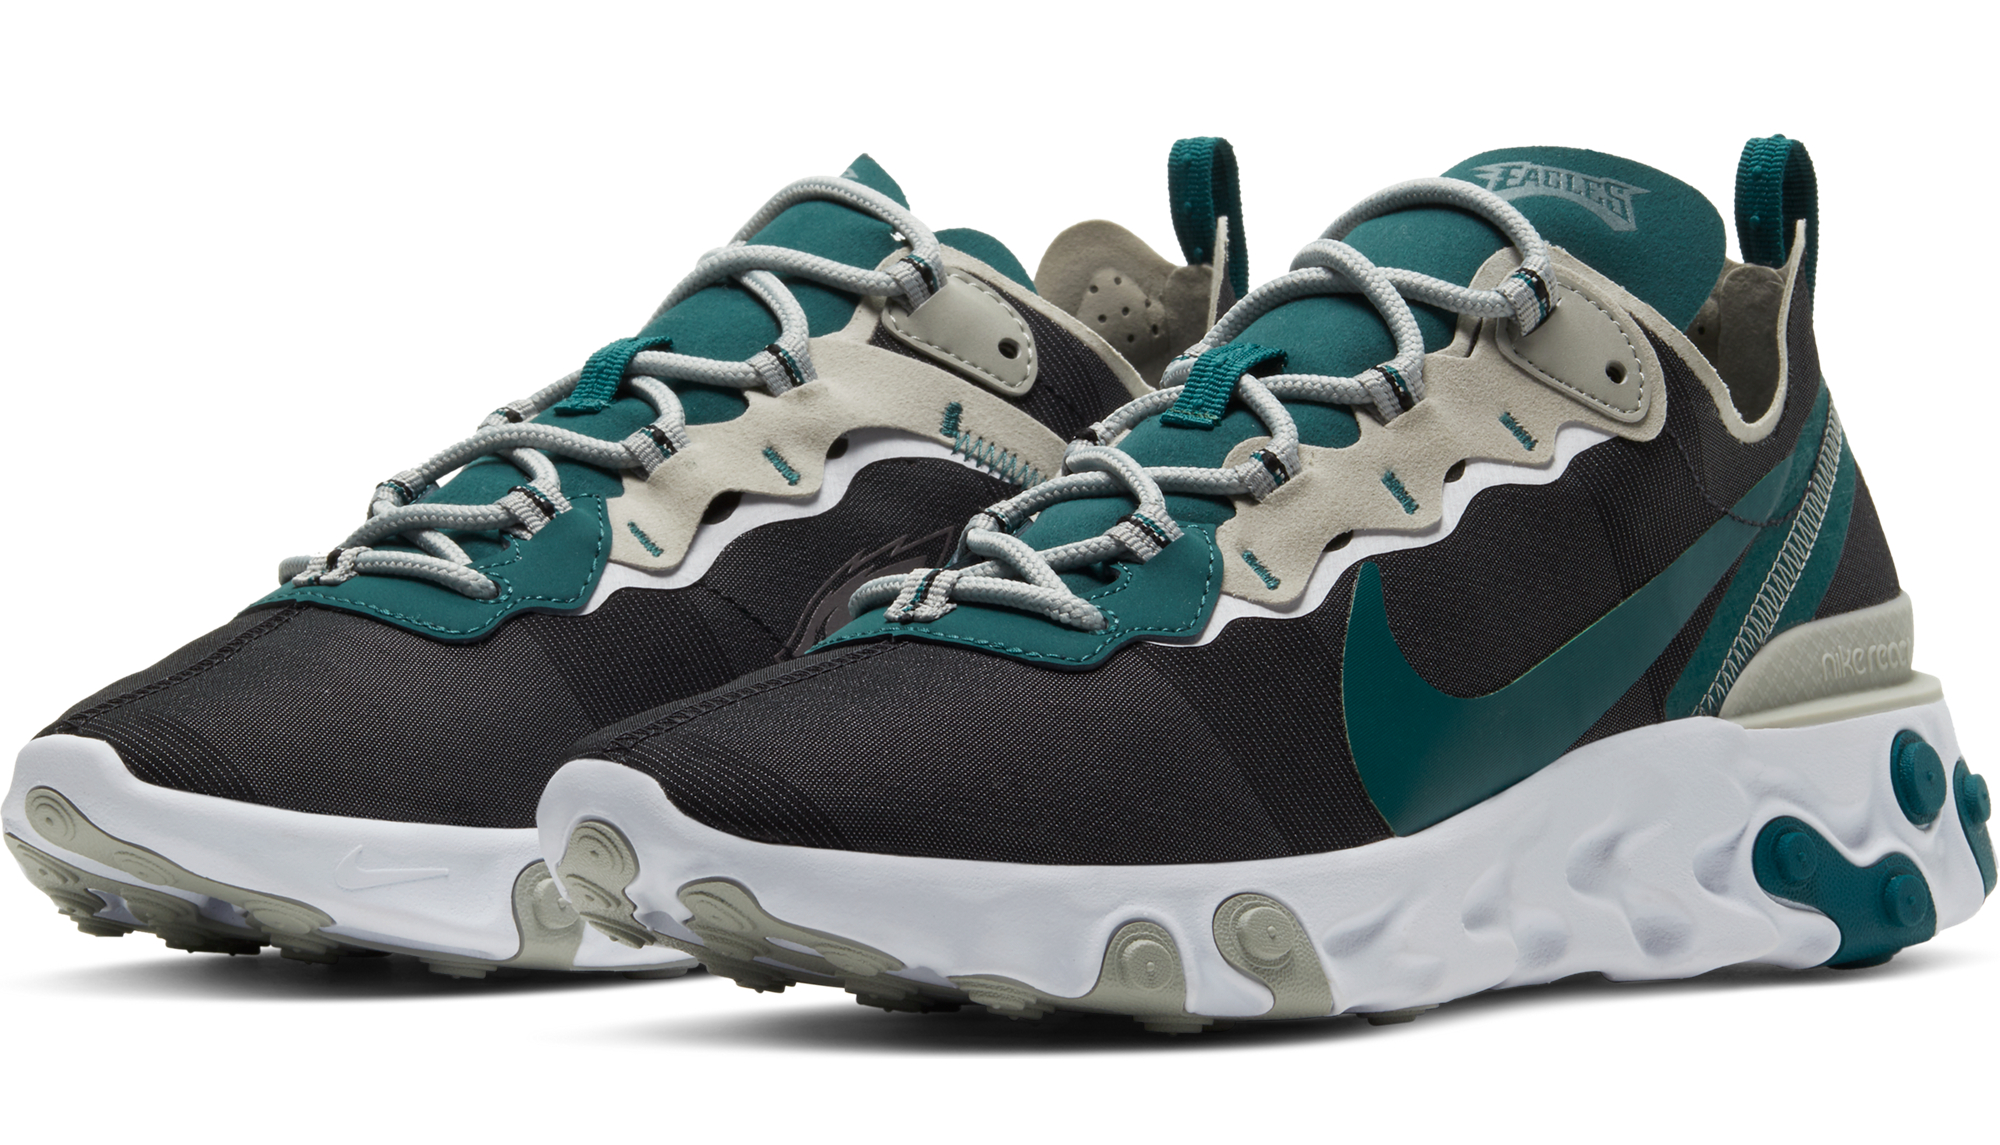 Nike releases Philadelphia Eagles limited edition React